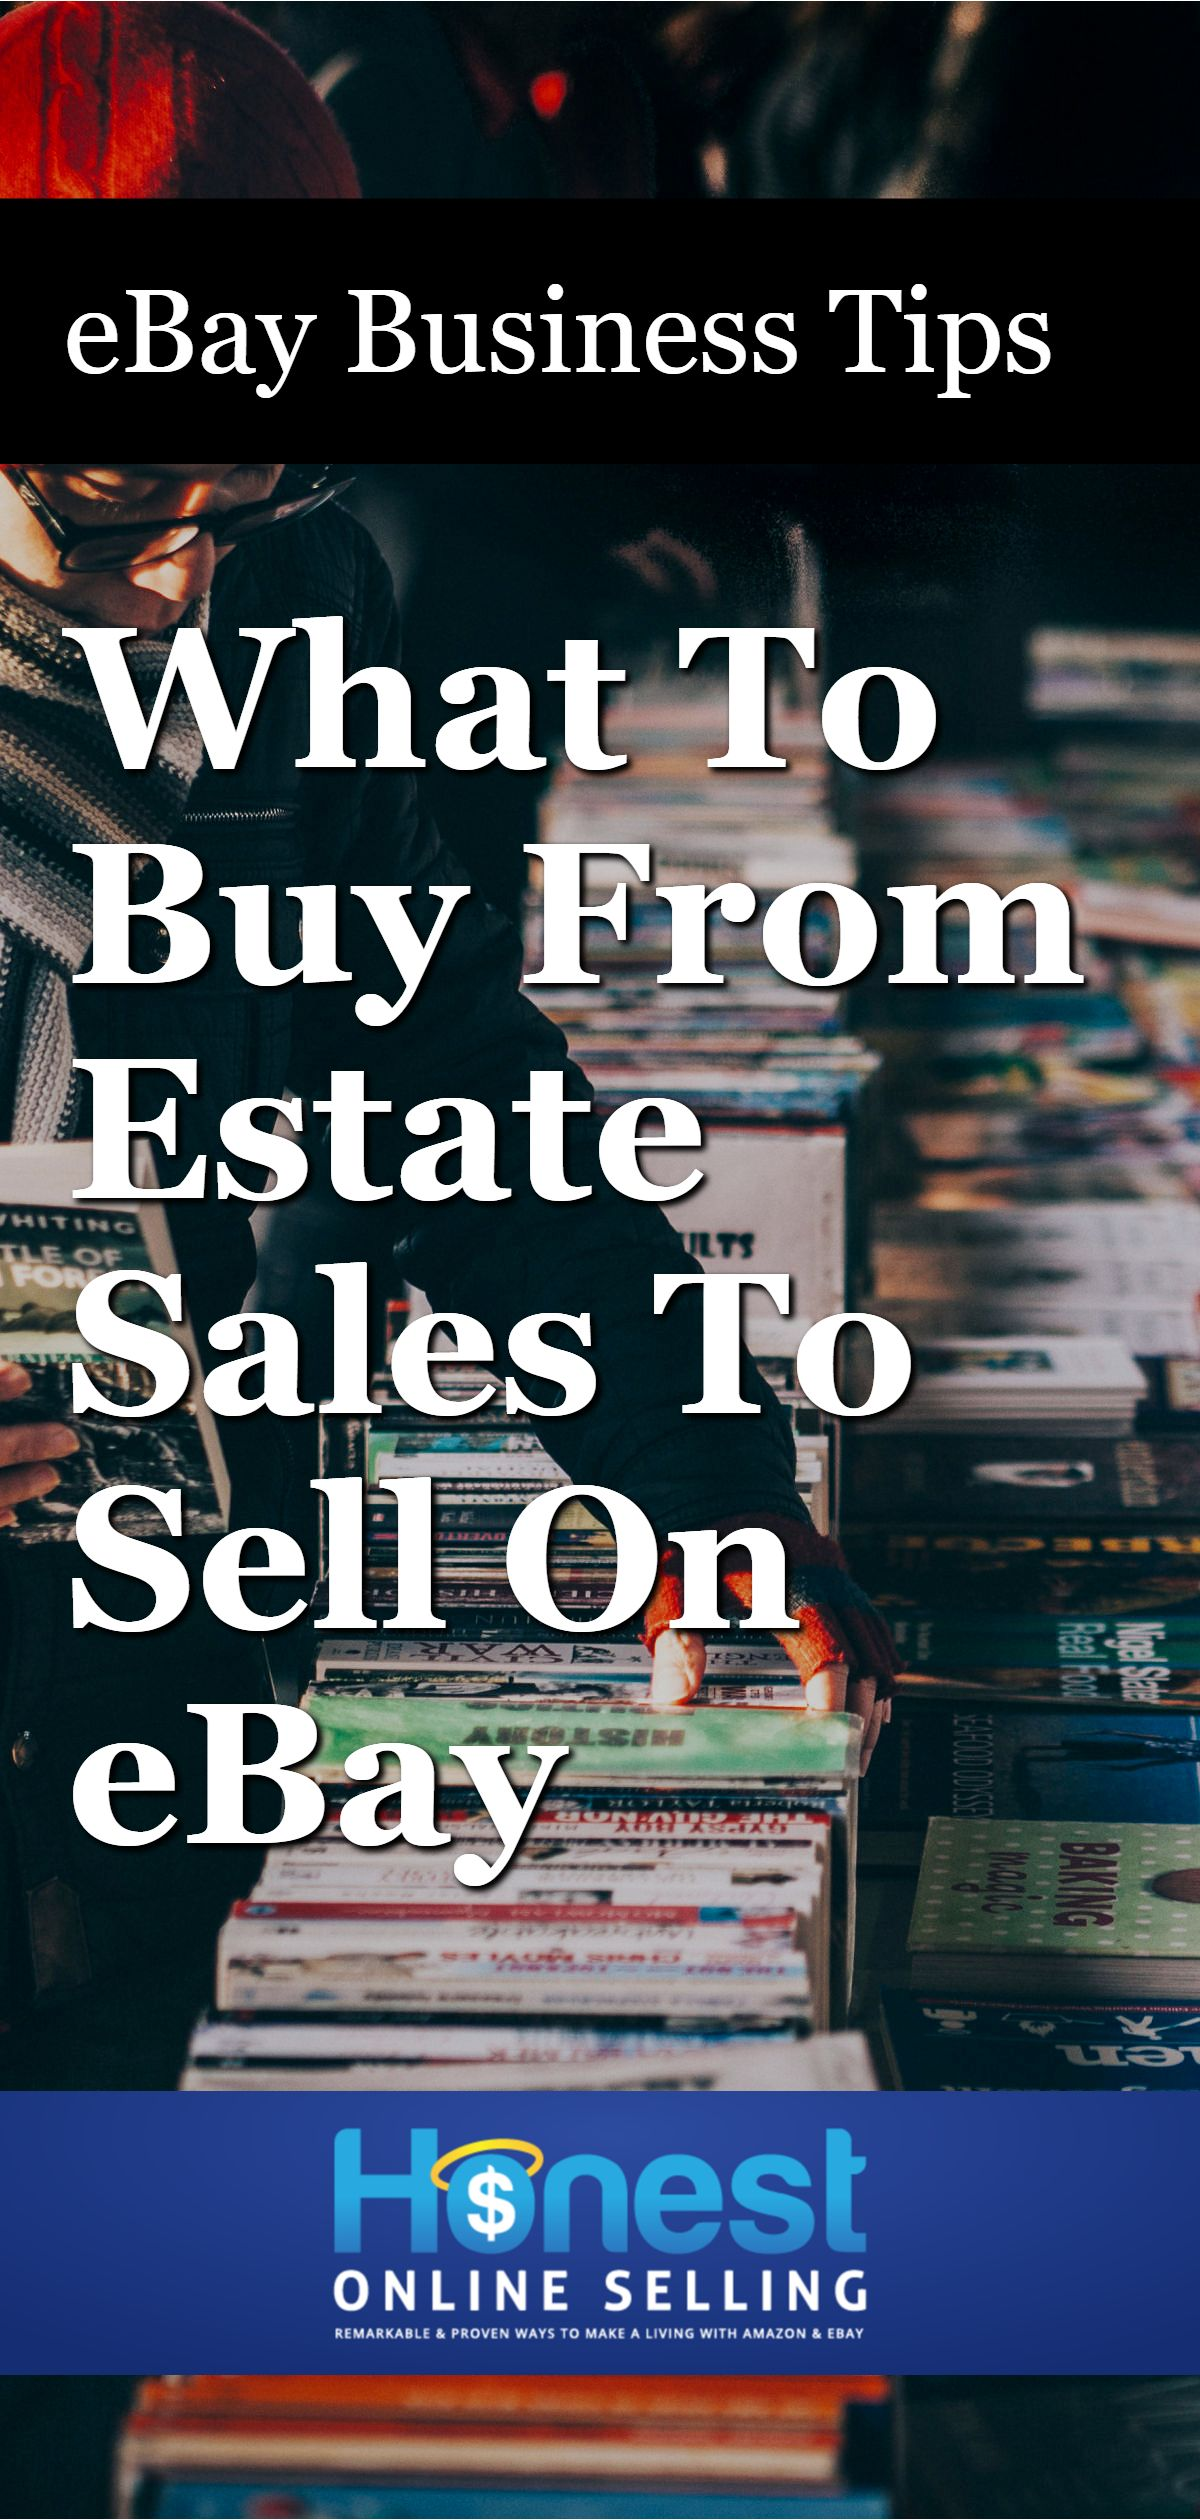 Why Selling On Ebay Still Matters With Images Selling On Ebay Ebay Business Ebay Selling Tips